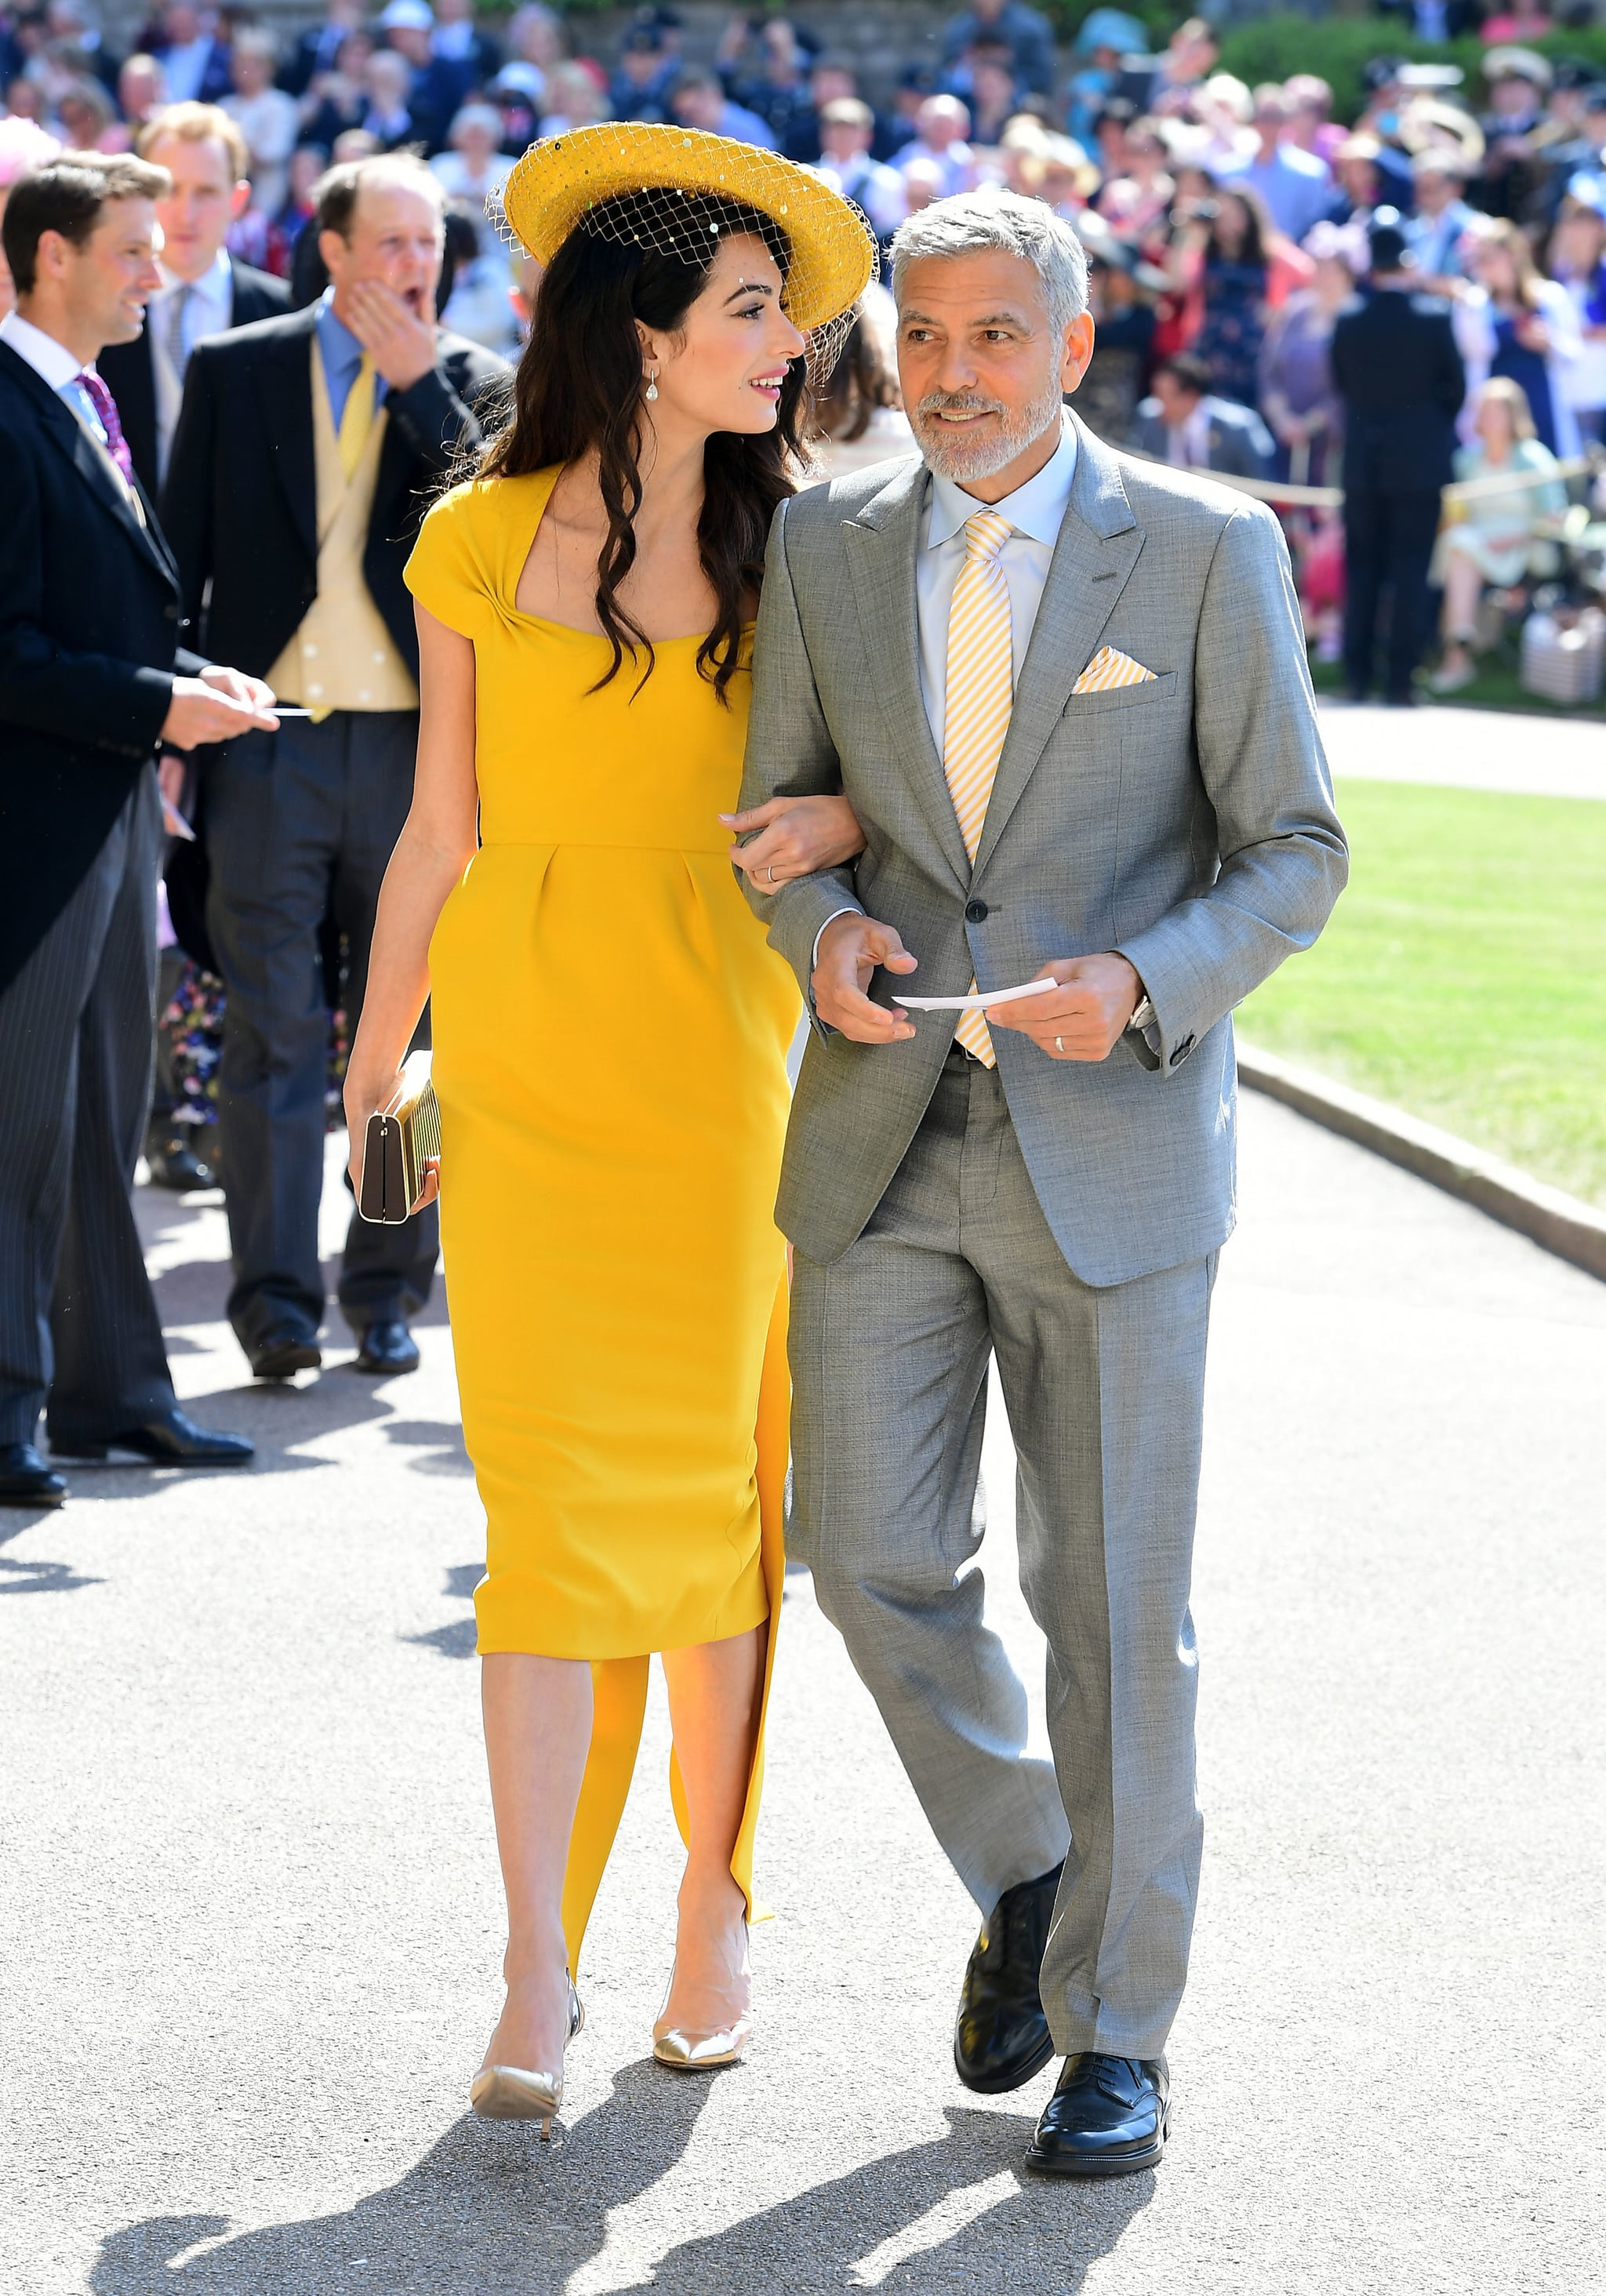 George And Amal Clooney At Royal Wedding 2018 Pictures Popsugar Celebrity